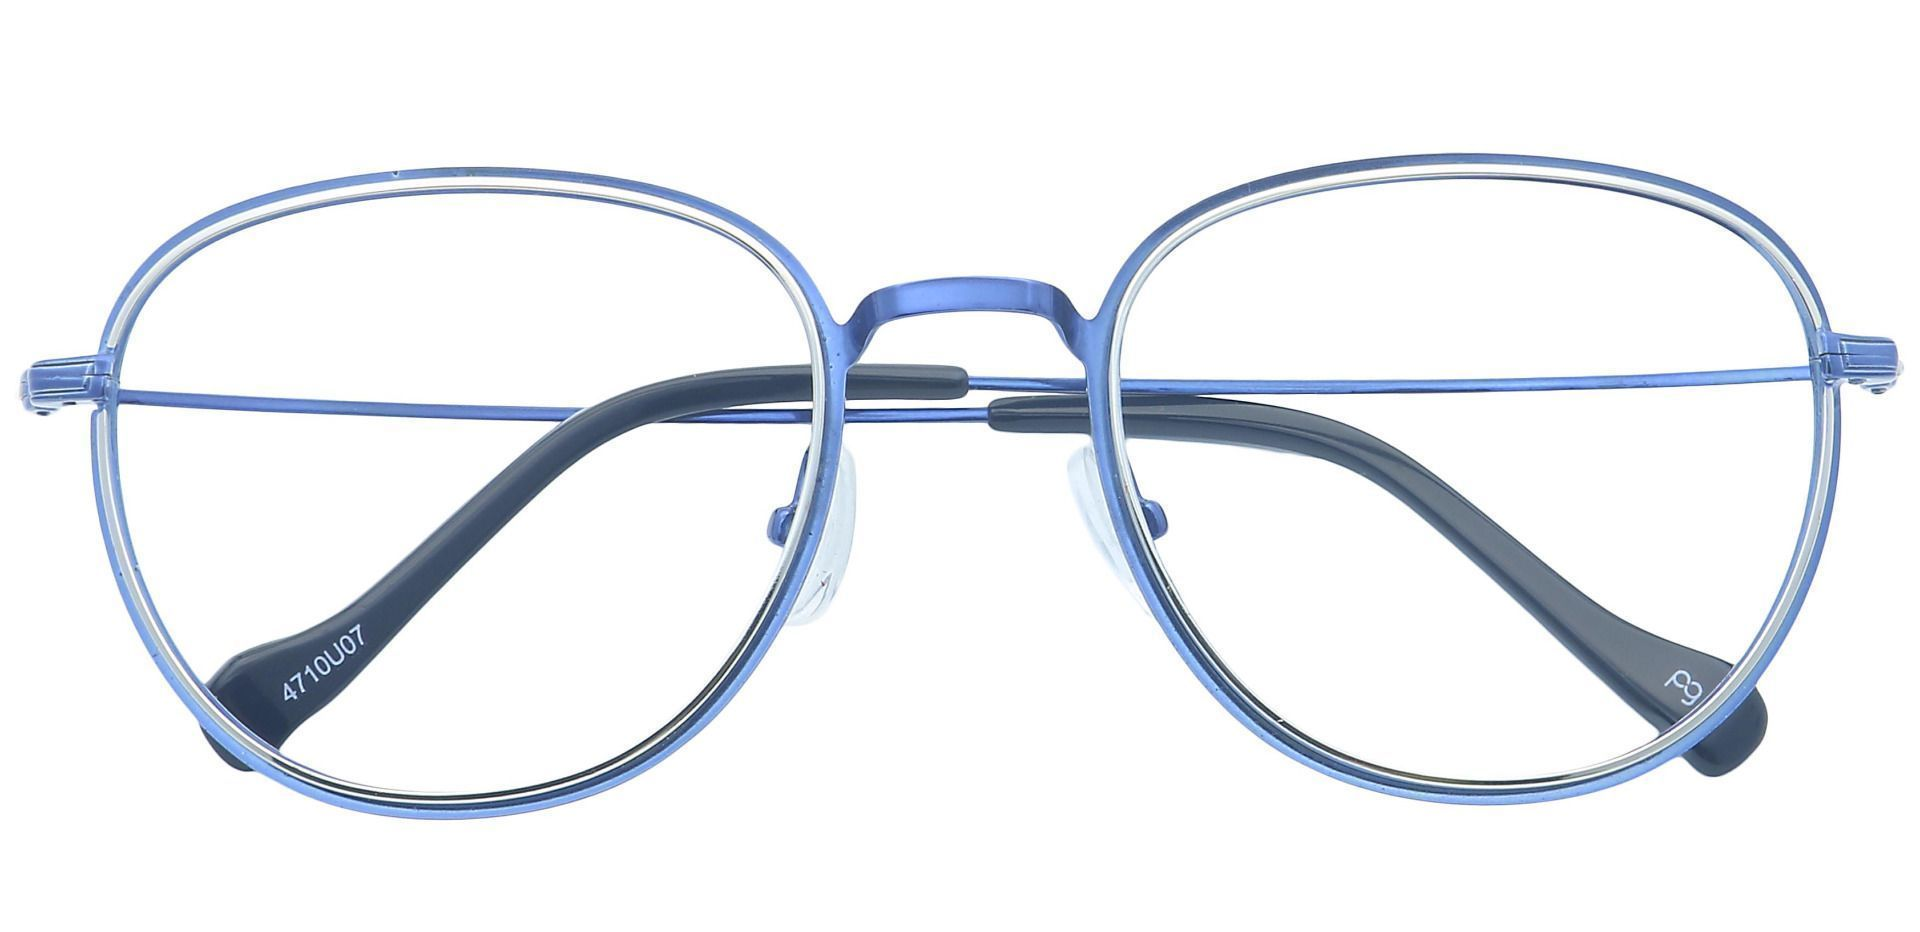 Foster Oval Progressive Glasses - Blue